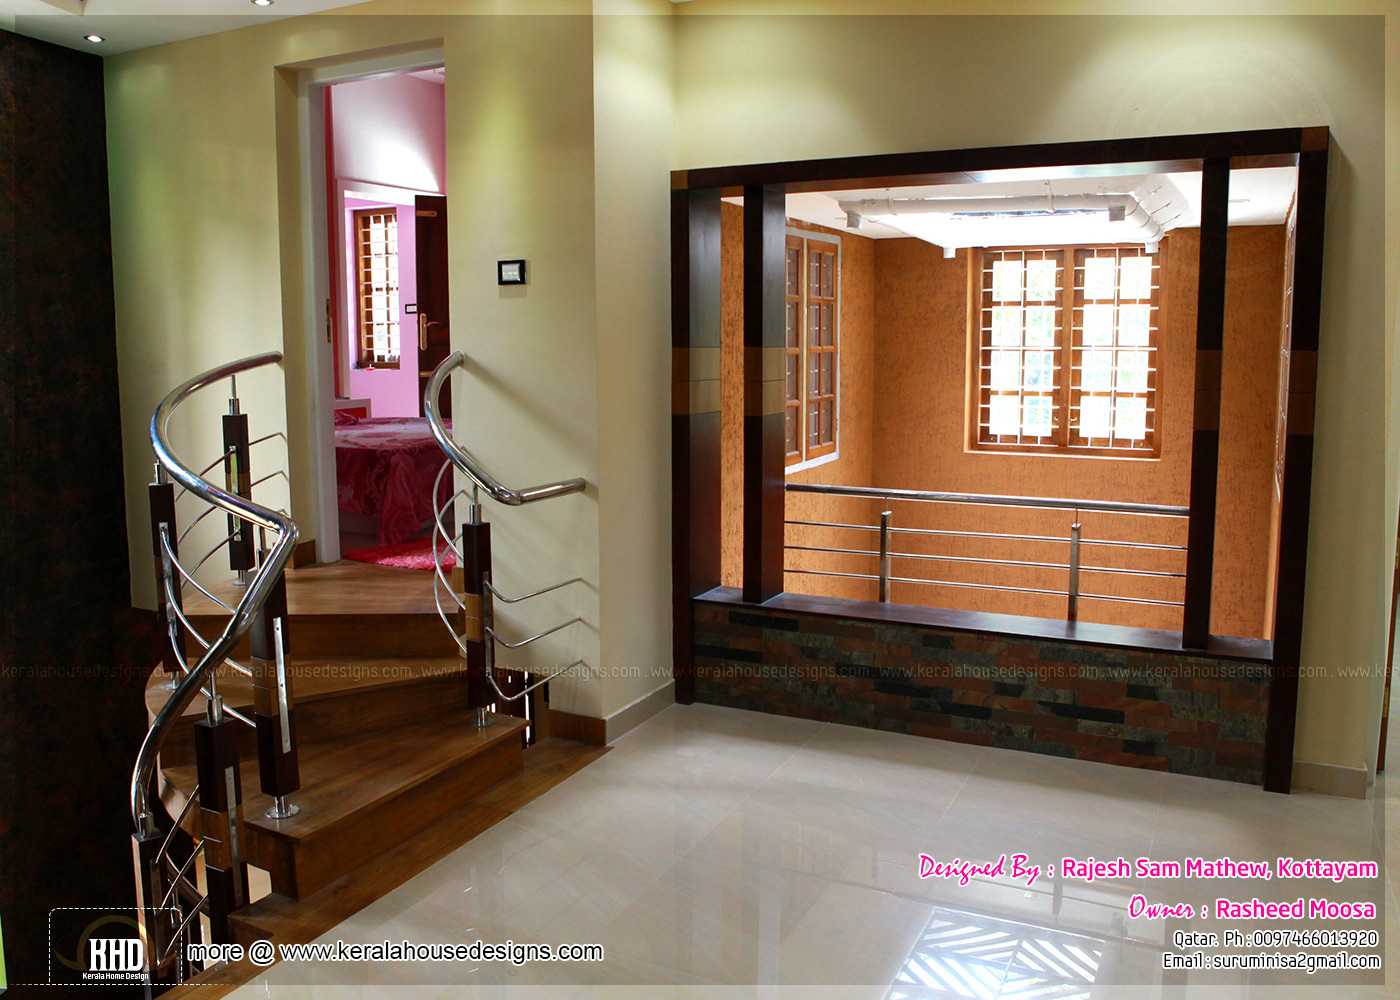 Kerala interior design with photos kerala home design for House interior designs for small houses